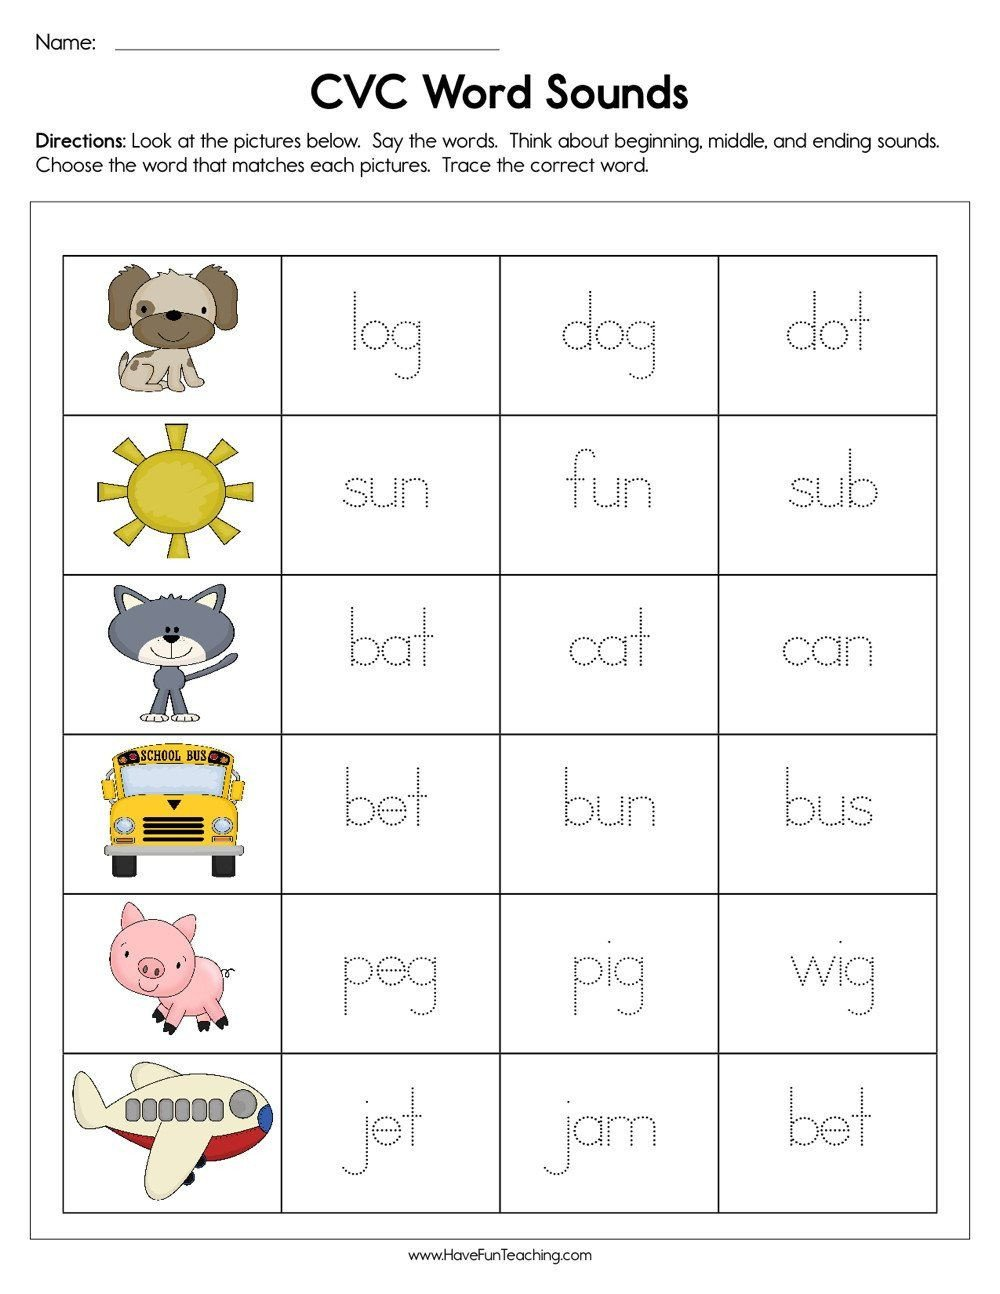 Cvc Words Worksheet Kindergarten Cvc Worksheet Kindergarten Cvc Word sounds Worksheet In 2020